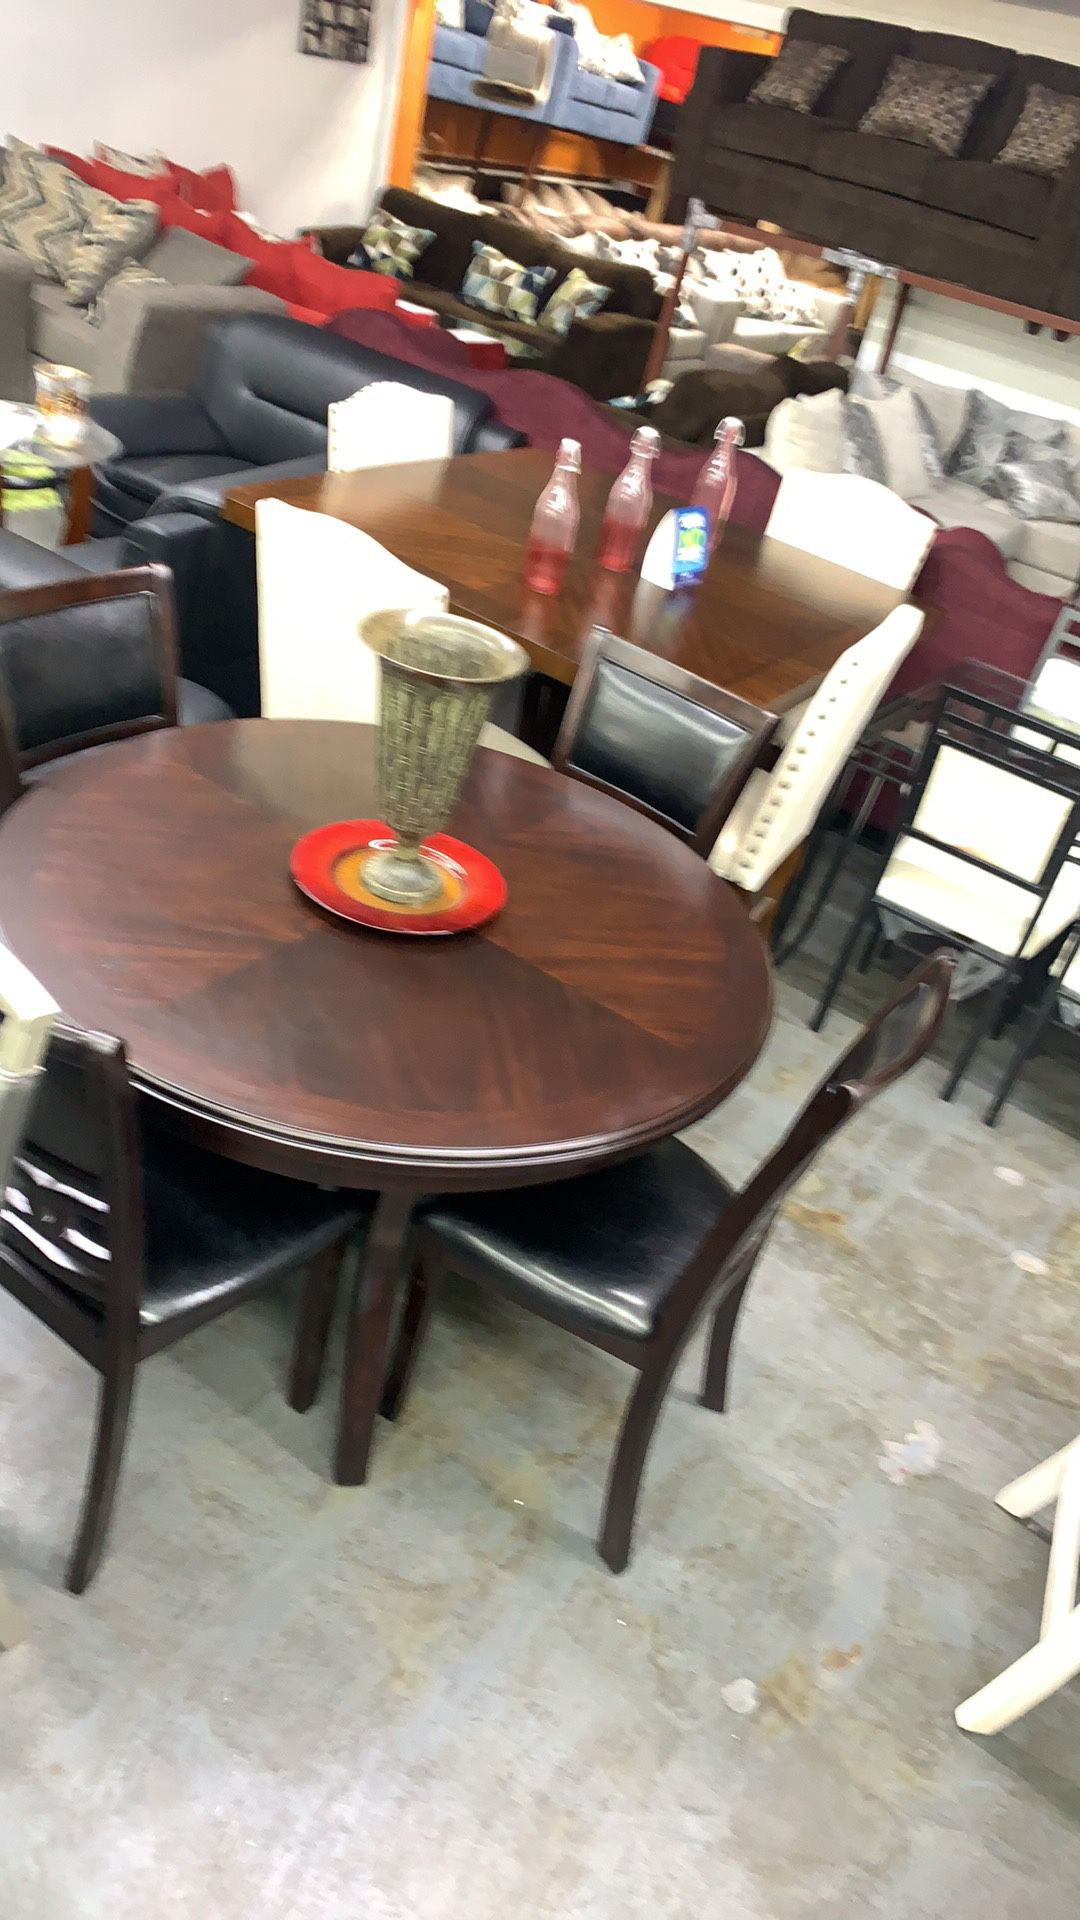 New table for $380